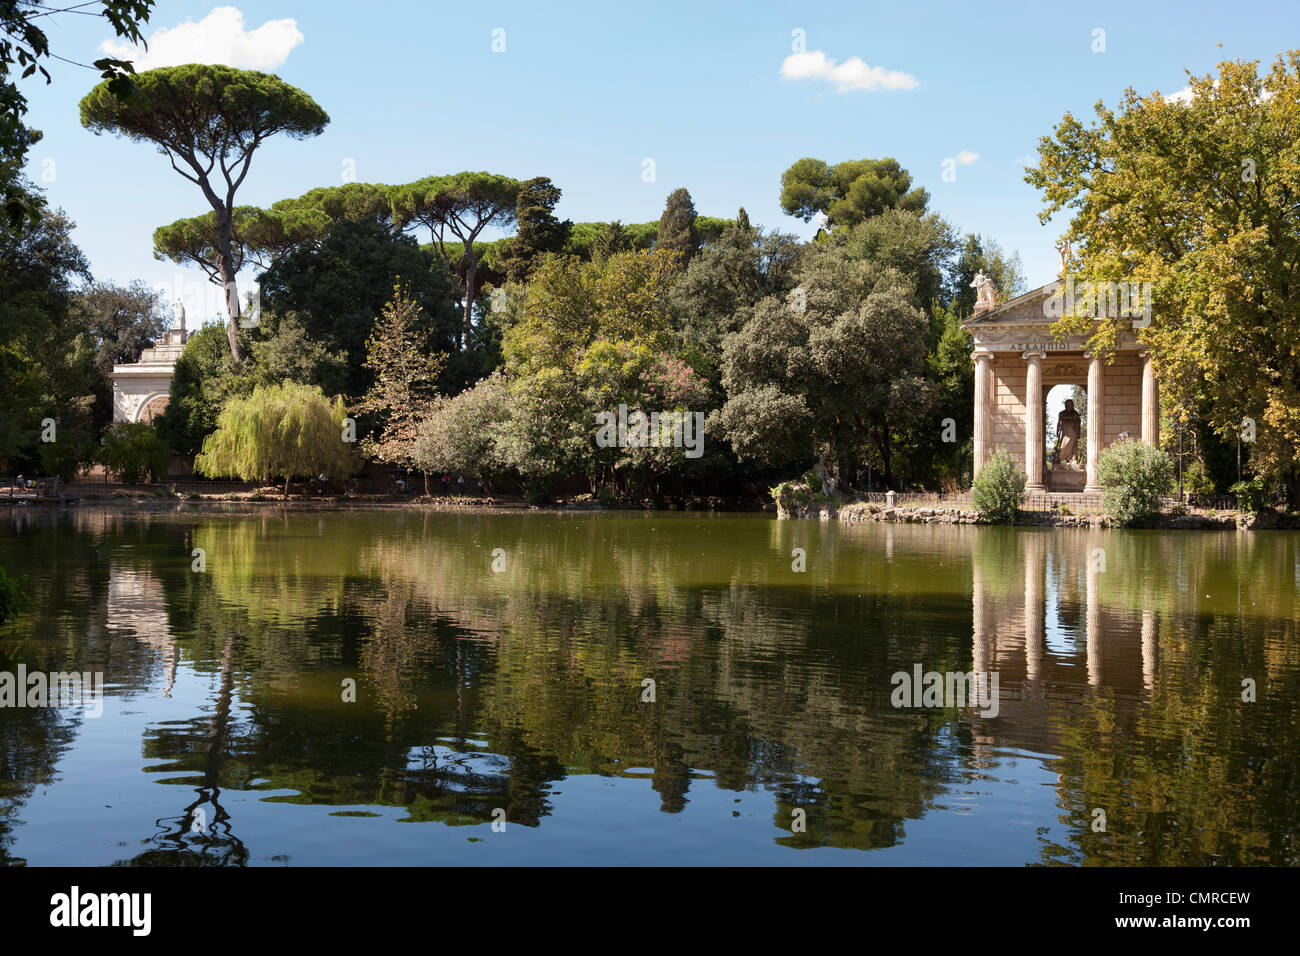 Temple of Aesculapius and lake in the villa borghese gardens in Rome ...